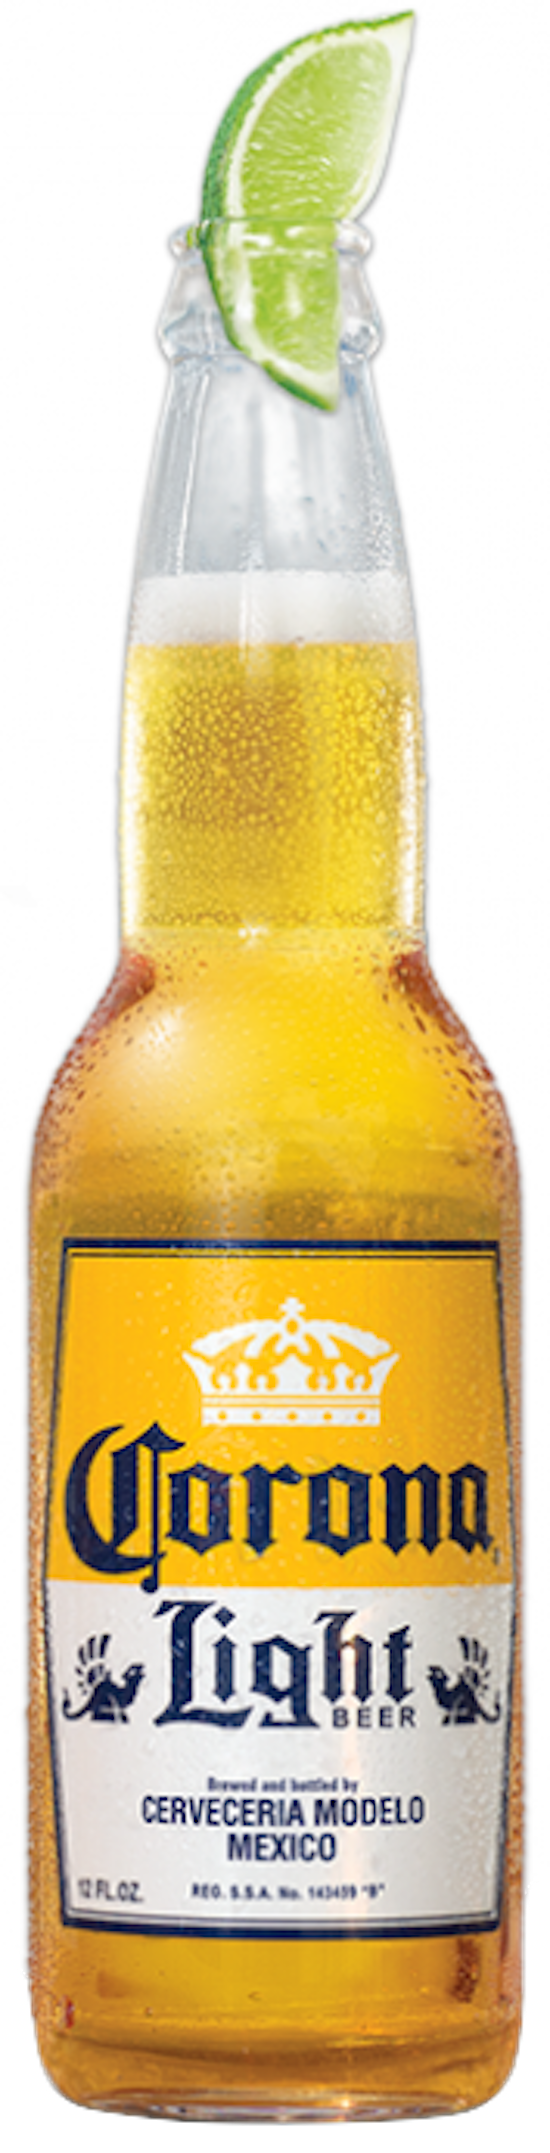 1st-republic-brewing-company-corona-light_1477953503